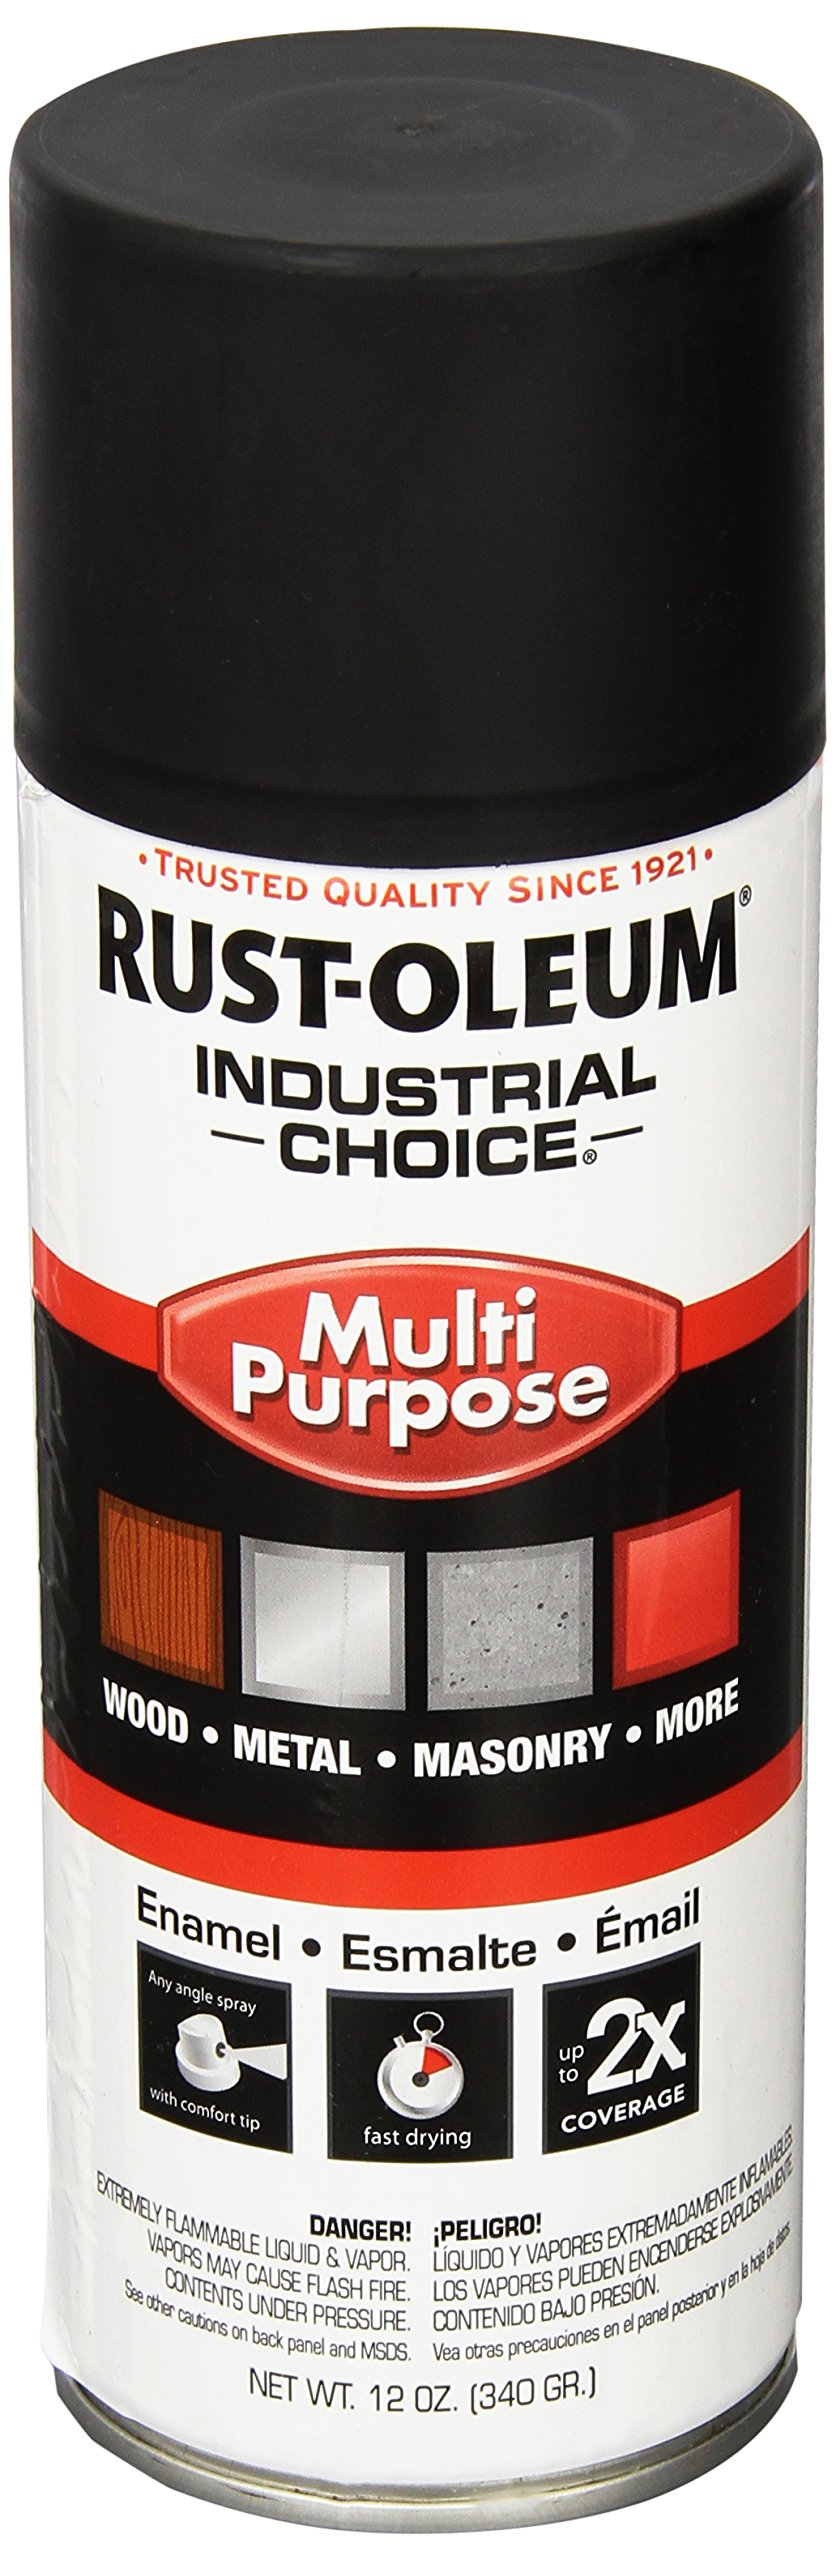 Rust-Oleum 1676830 Ultra-Flat Black 1600 System General Purpose Enamel Spray Paint, 16 fl. oz. container, 12 oz. weight fill, Can (Pack of 6)